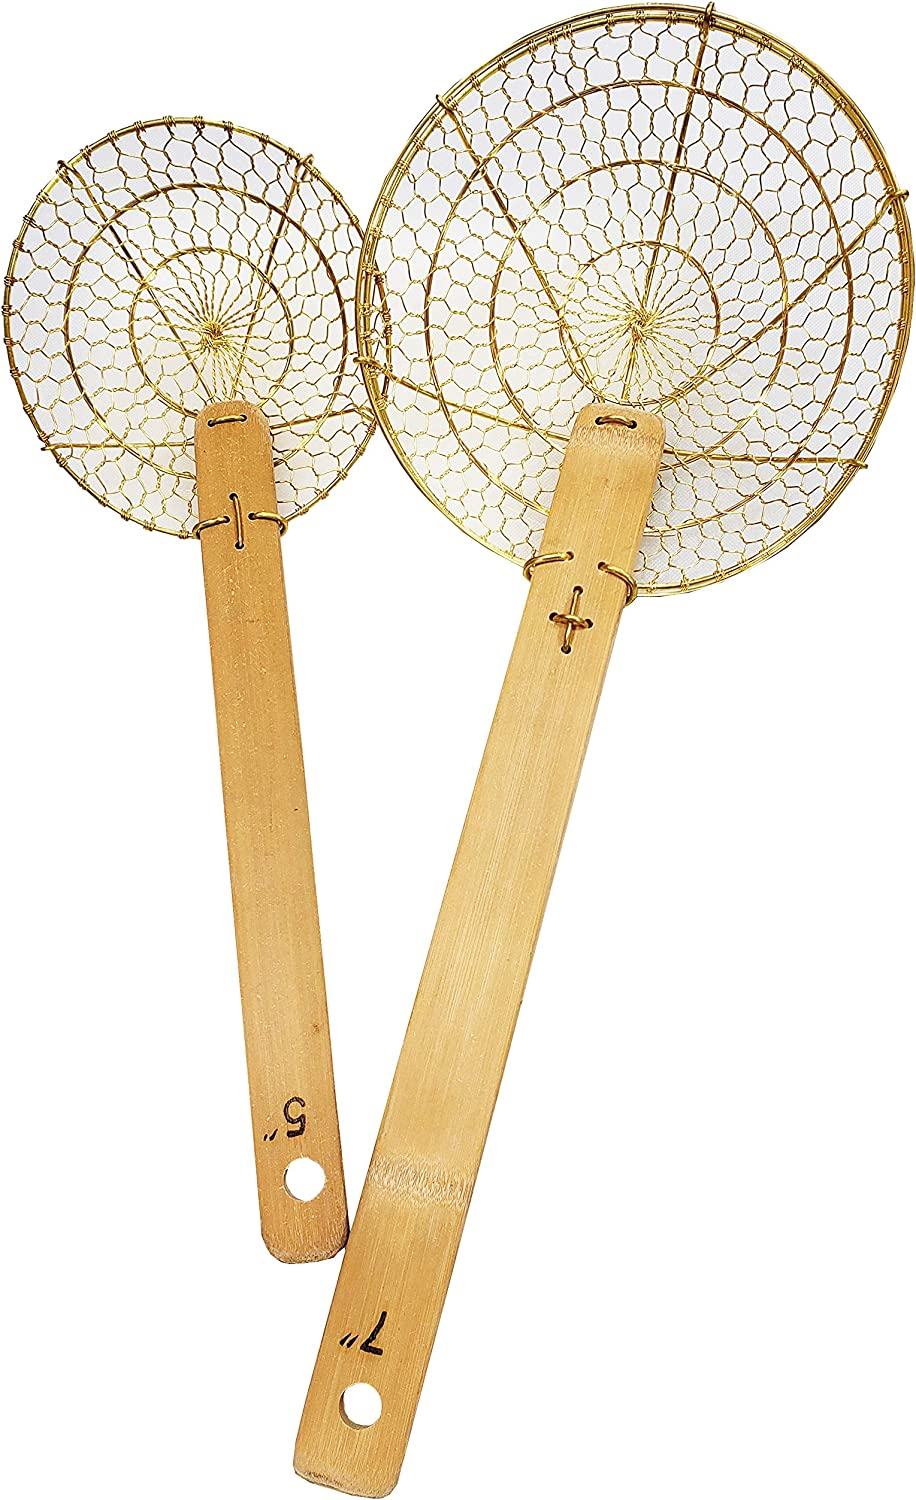 "5"" & 7"" Set Round Brass Spider Strainer Sets with Bamboo Handles"